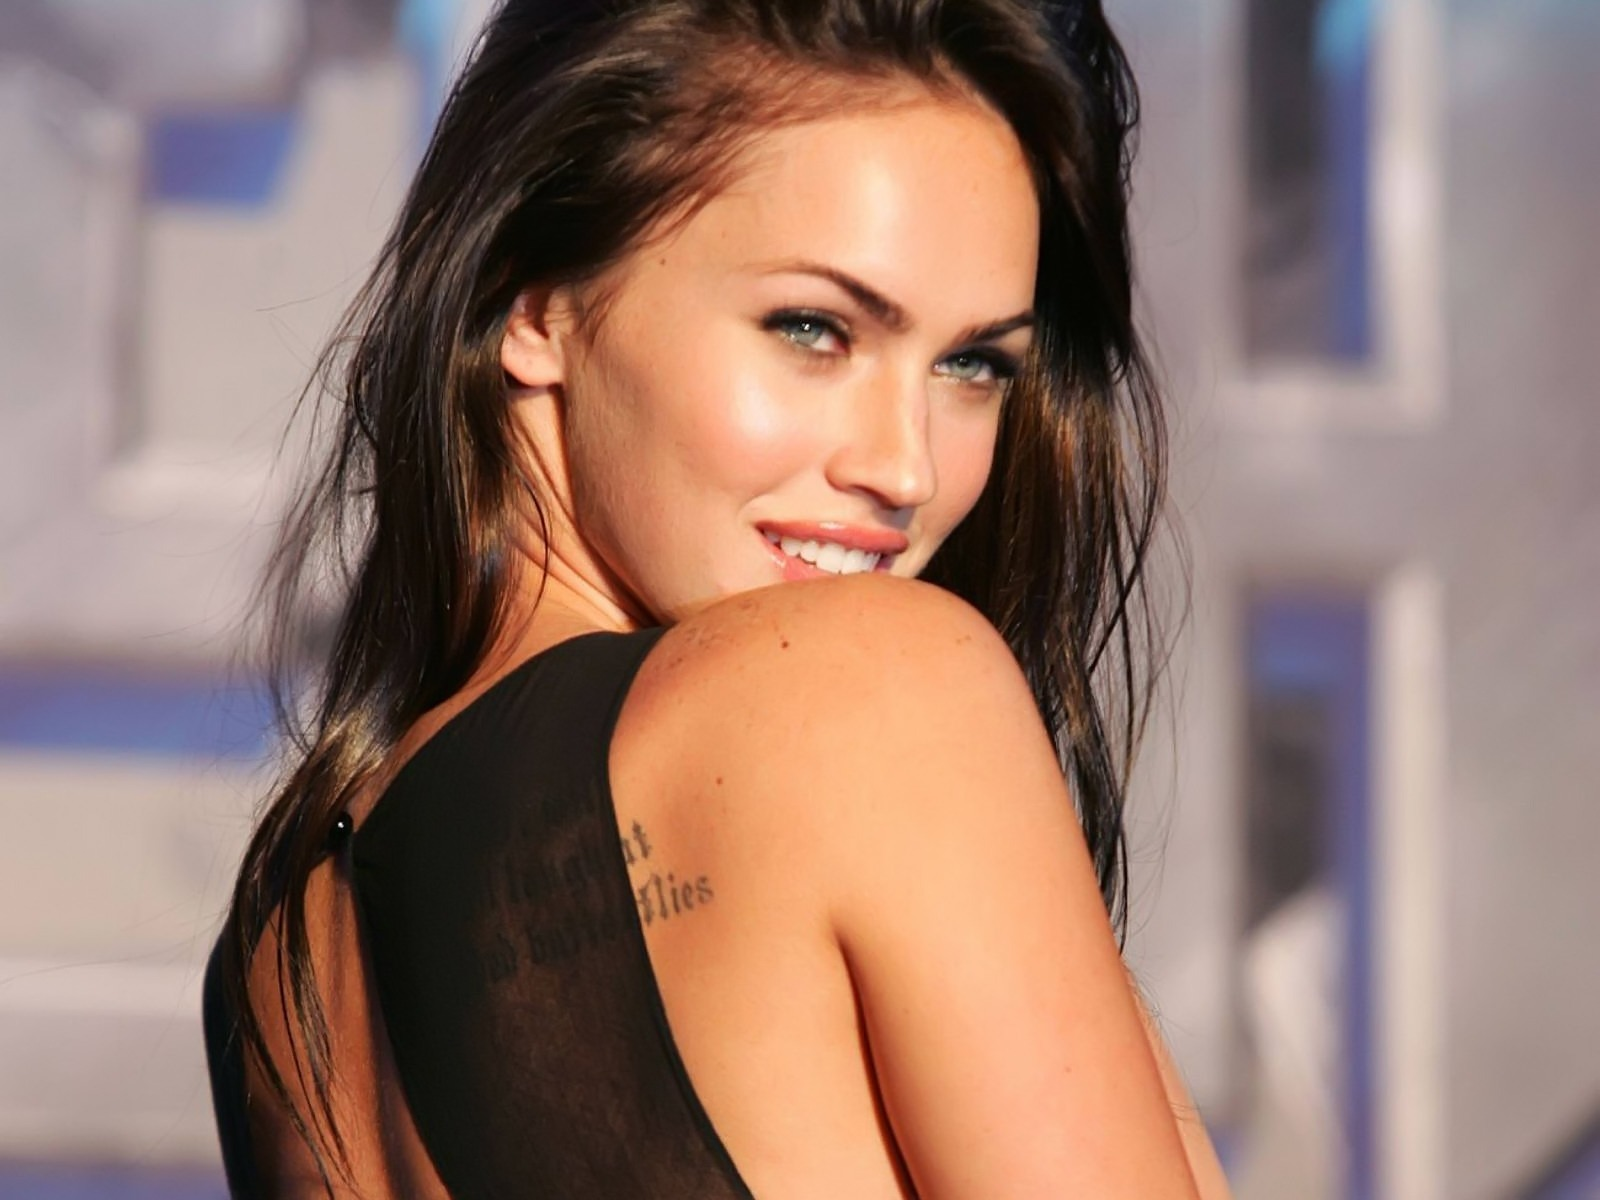 Sexy wallpaper megan fox wallpapers for free download about 3049 beautiful megan fox wallpaper megan fox female celebrities voltagebd Images